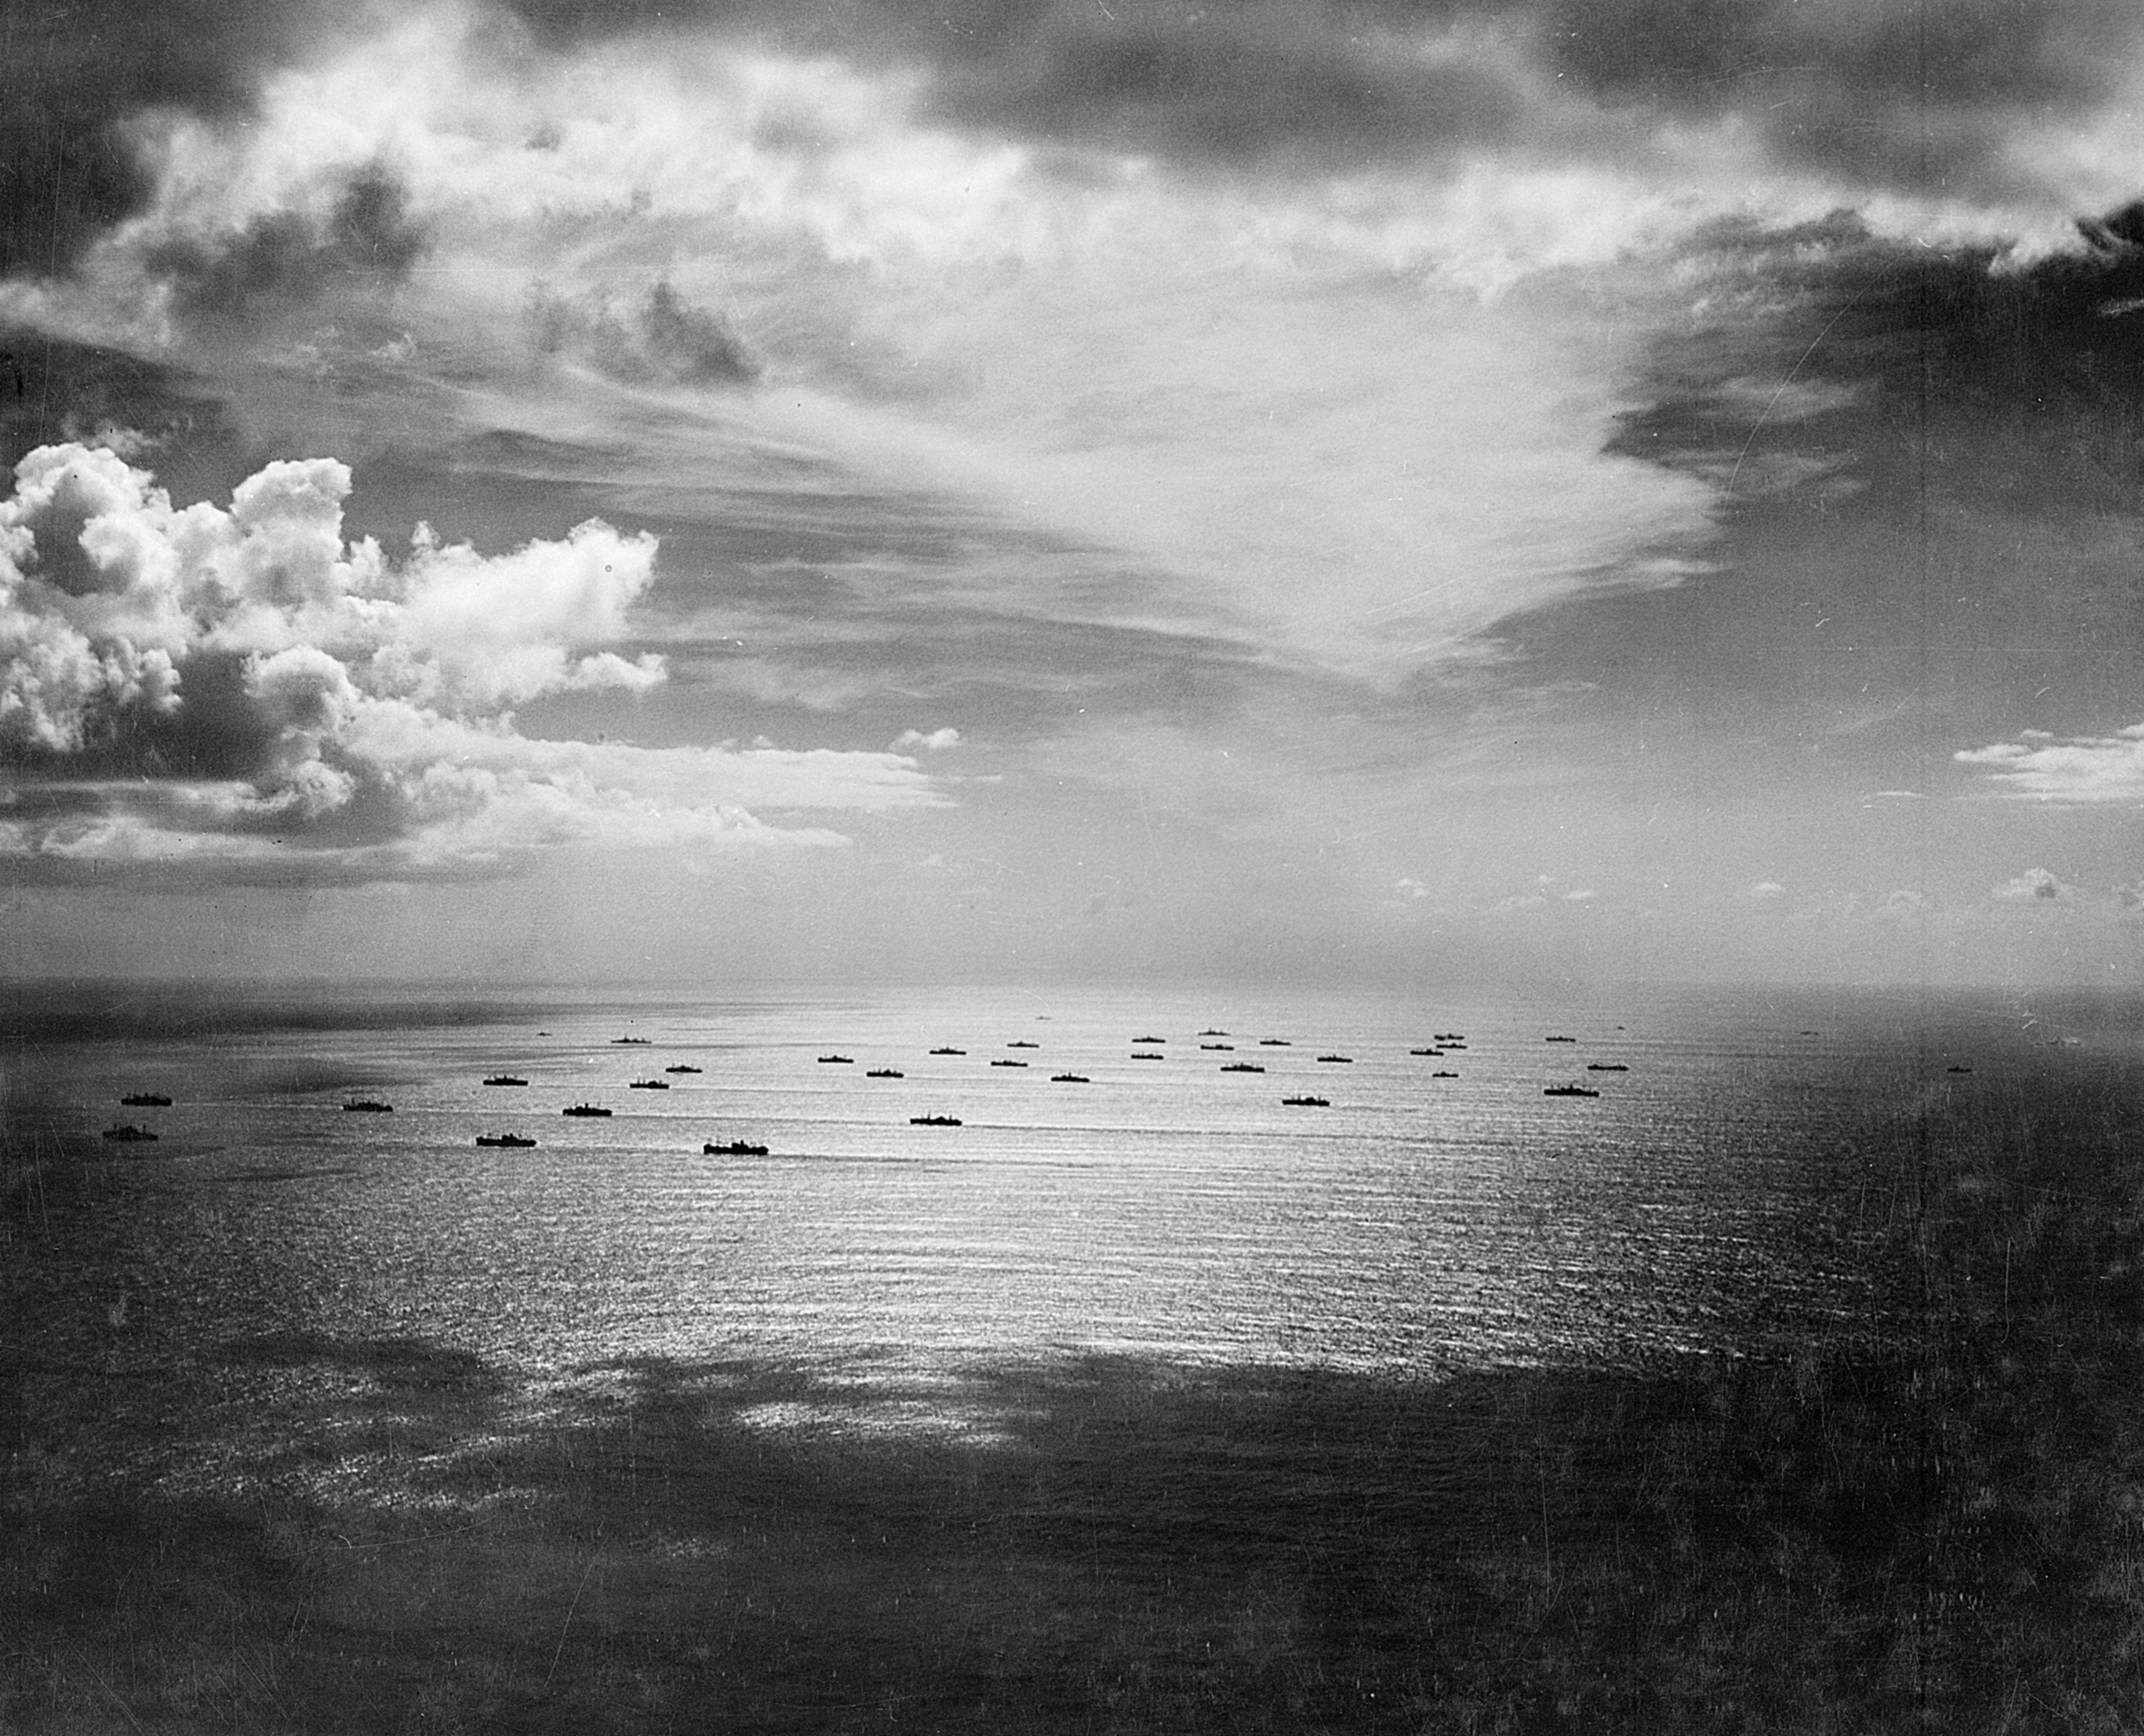 An aerial photo of one of the earliest UG convoys taken in November 1942.